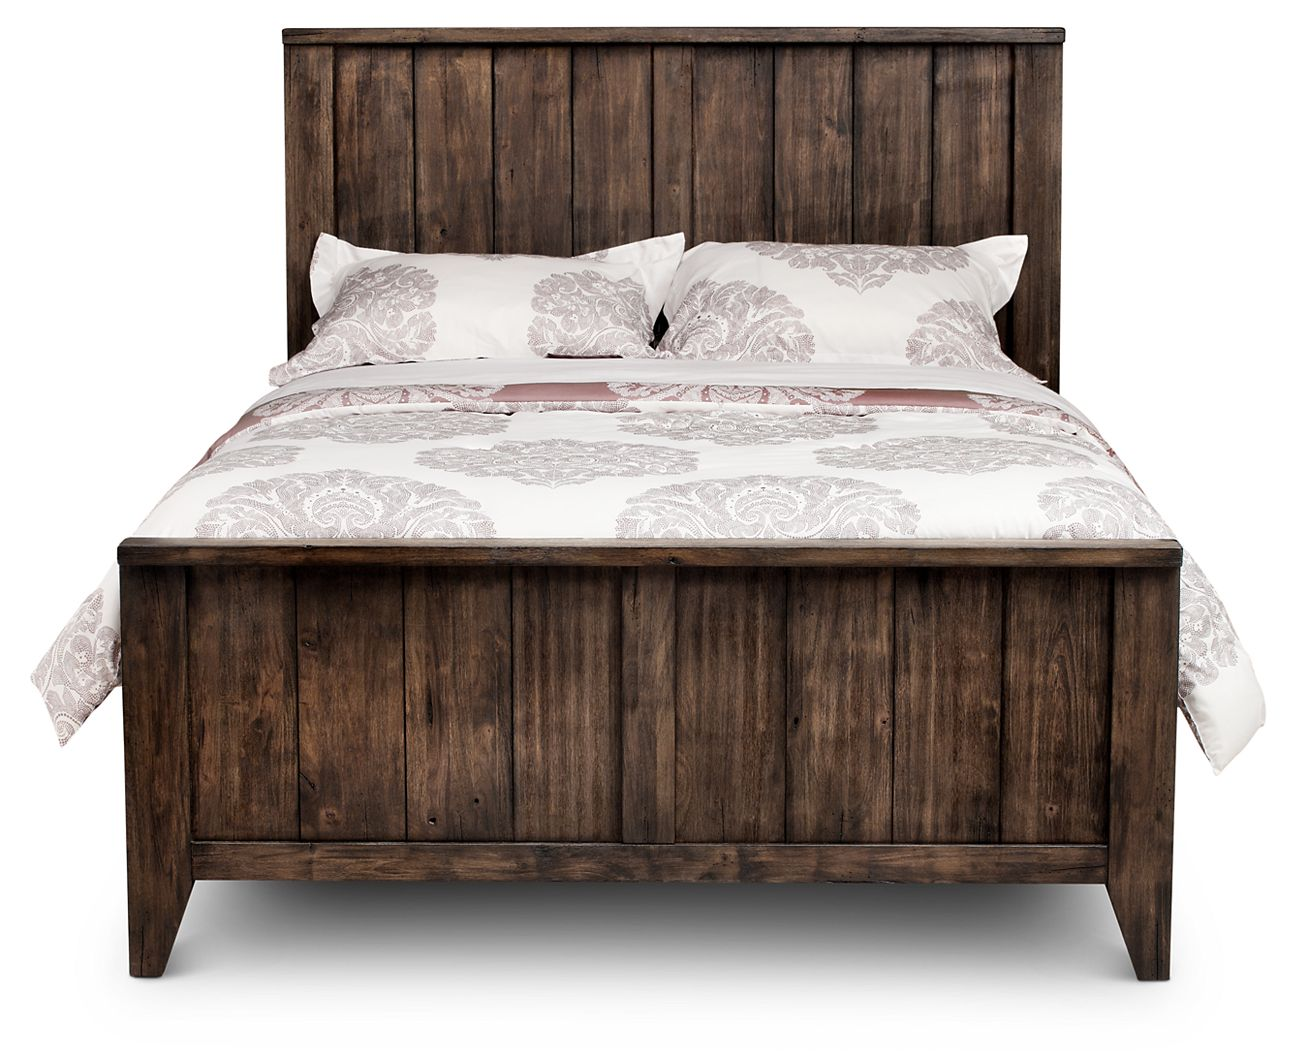 Glenwood Panel Bed. ON SALE!